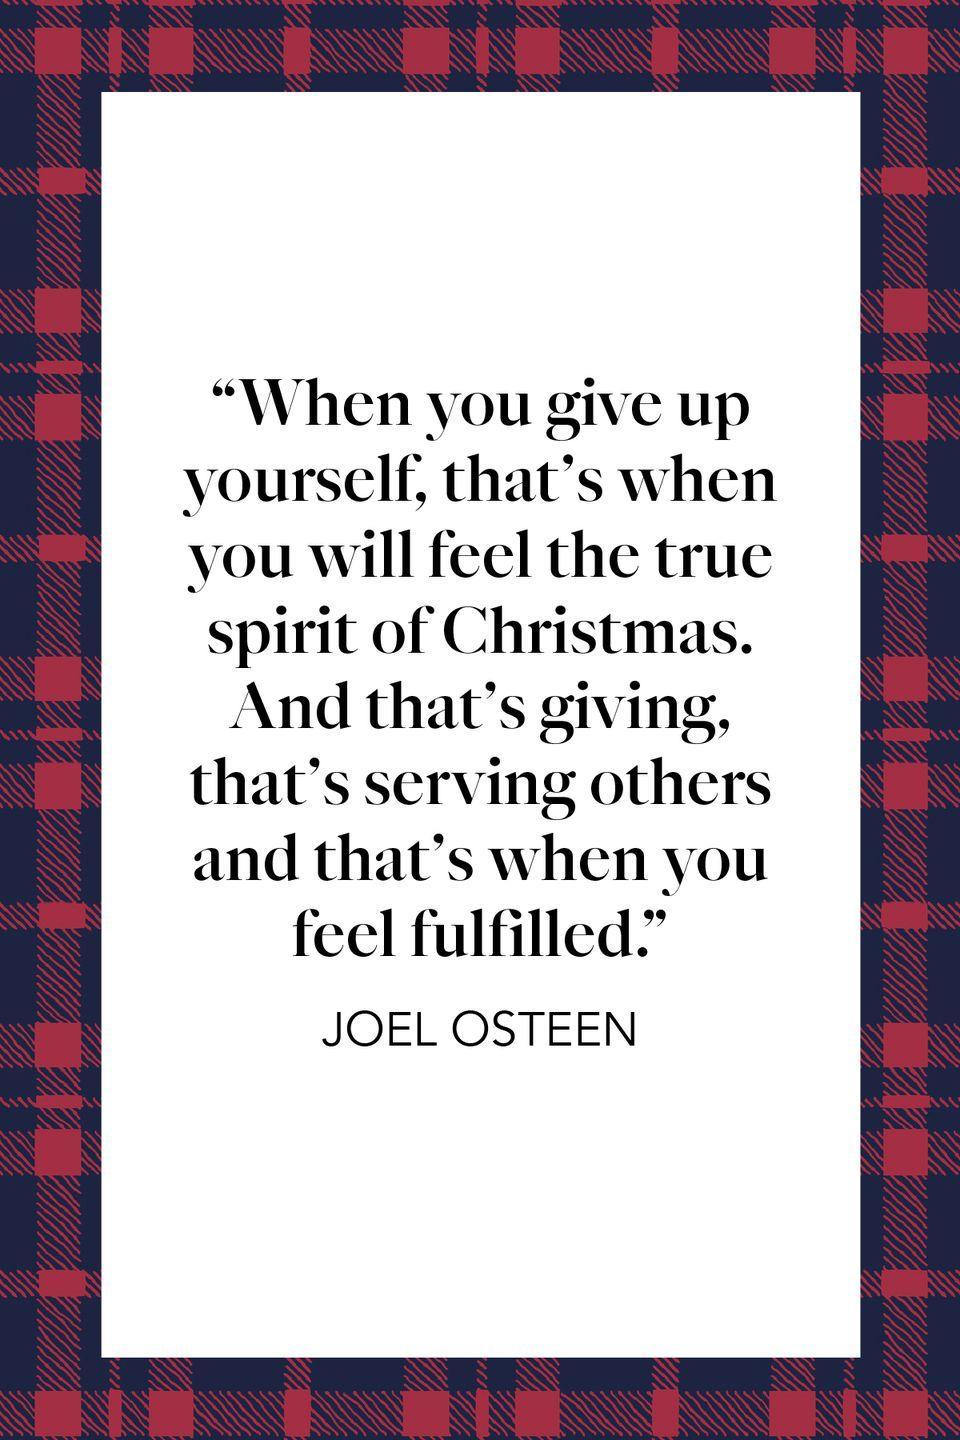 "<p>""When you give up yourself, that's when you will feel the true spirit of Christmas. And that's giving, that's serving others and that's when you feel fulfilled,"" Pastor, author and televangelist Joel Osteen said in <a href=""https://www.christianpost.com/news/interview-joel-and-victoria-osteen-on-christmas-stewardship-47651/"" rel=""nofollow noopener"" target=""_blank"" data-ylk=""slk:2010 interview with Christian Post"" class=""link rapid-noclick-resp"">2010 interview with Christian Post</a>.</p>"